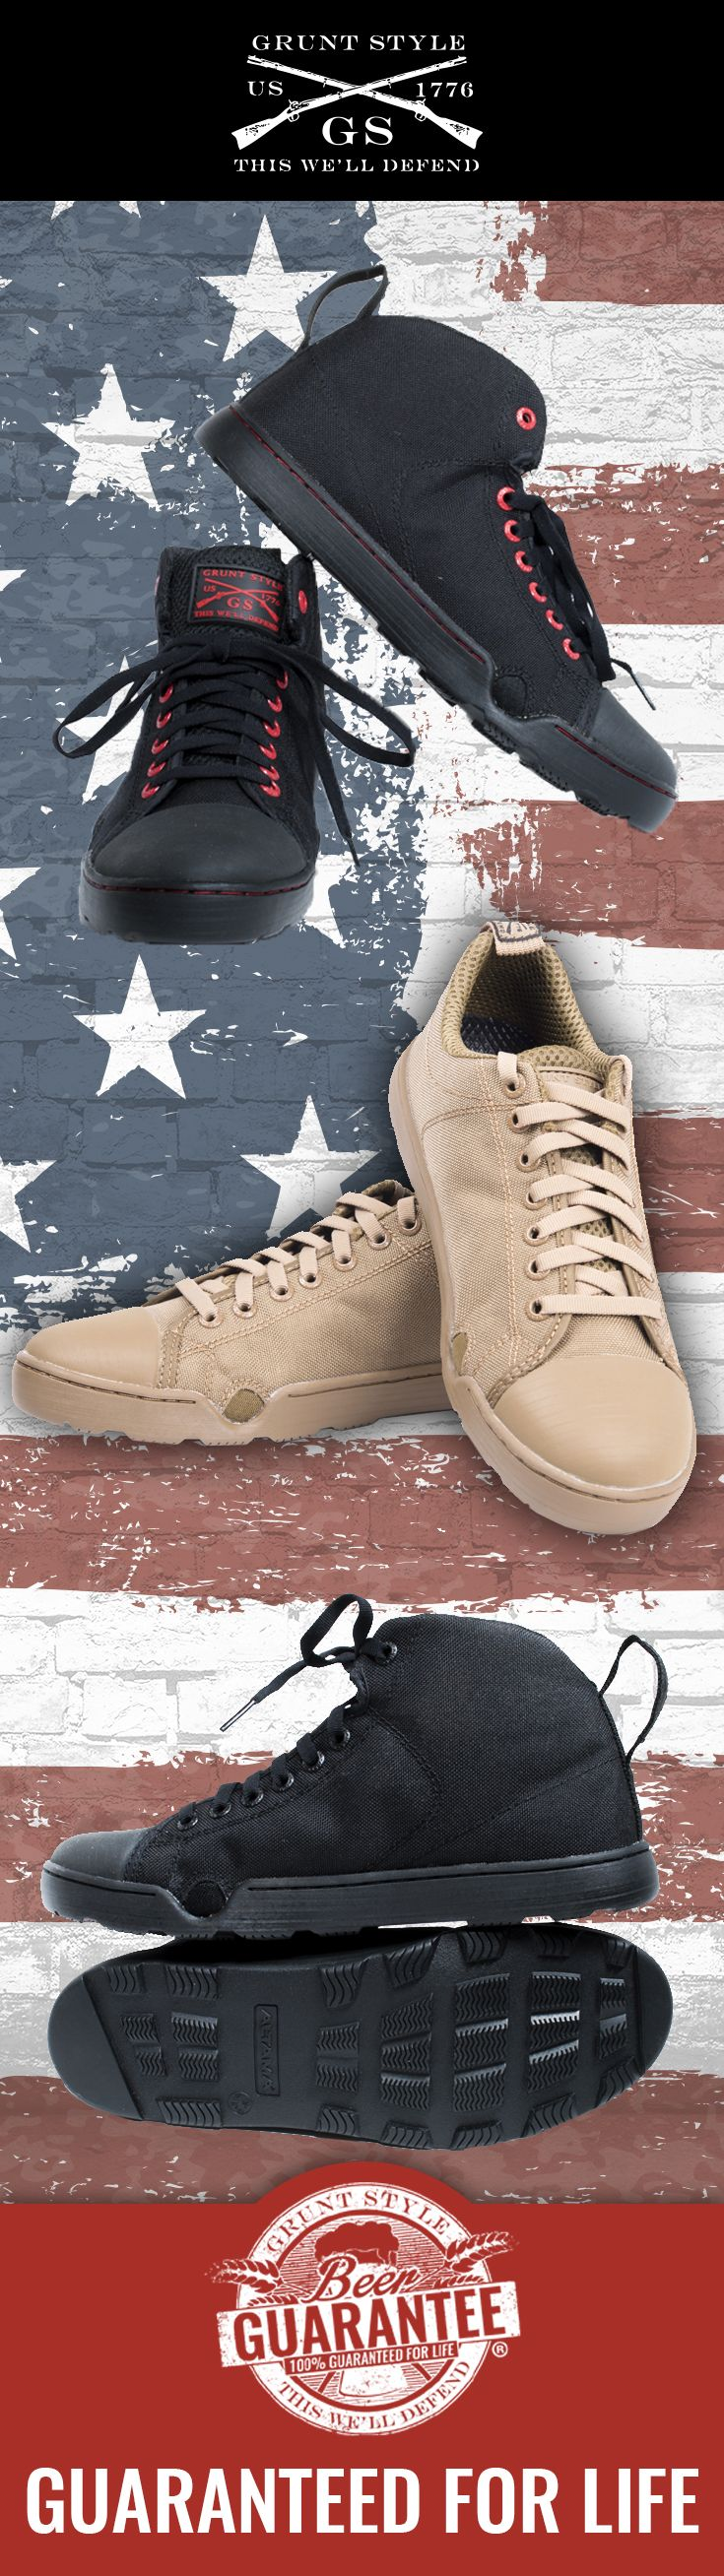 100% GUARANTEED FOR LIFE  We know living a freedom fueled life can get a little messy.   If anything happens we'll send you a new pair no questions asked.